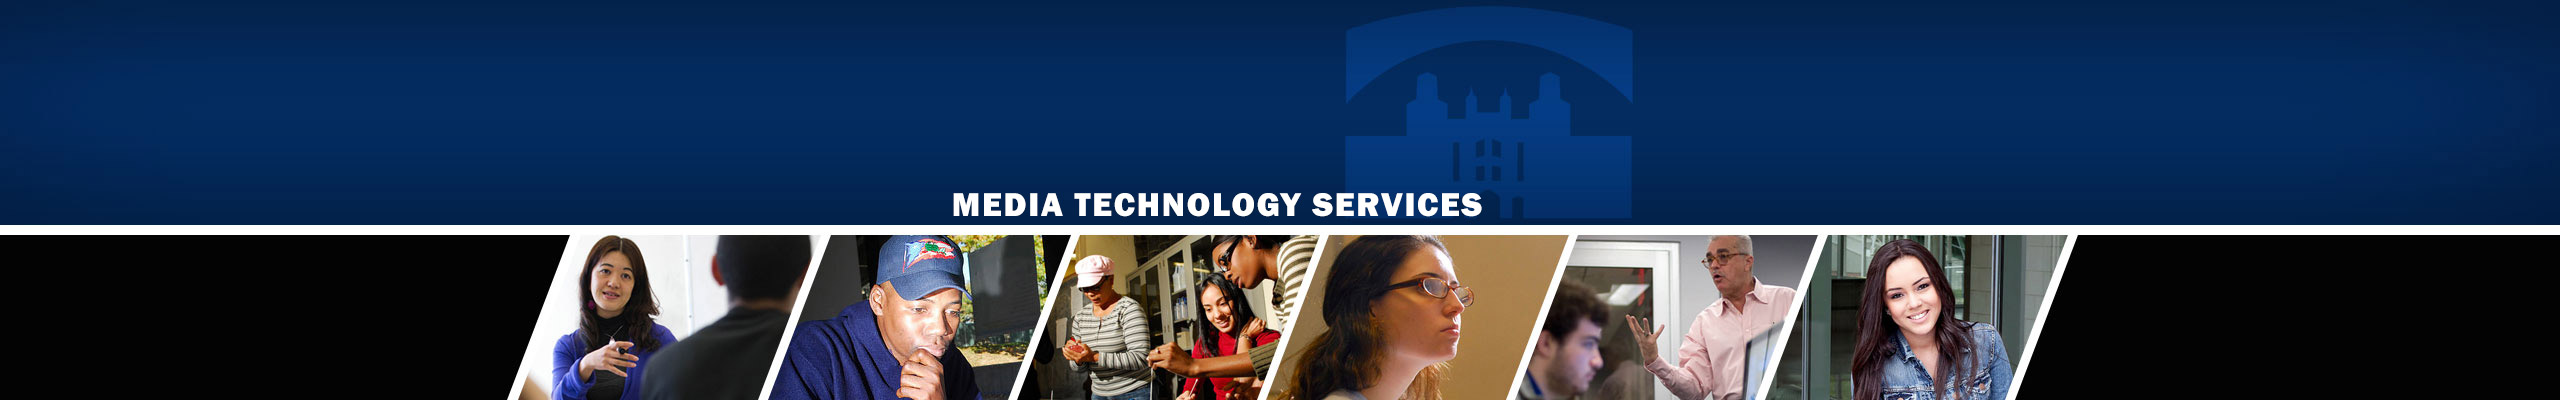 Media Technology Services